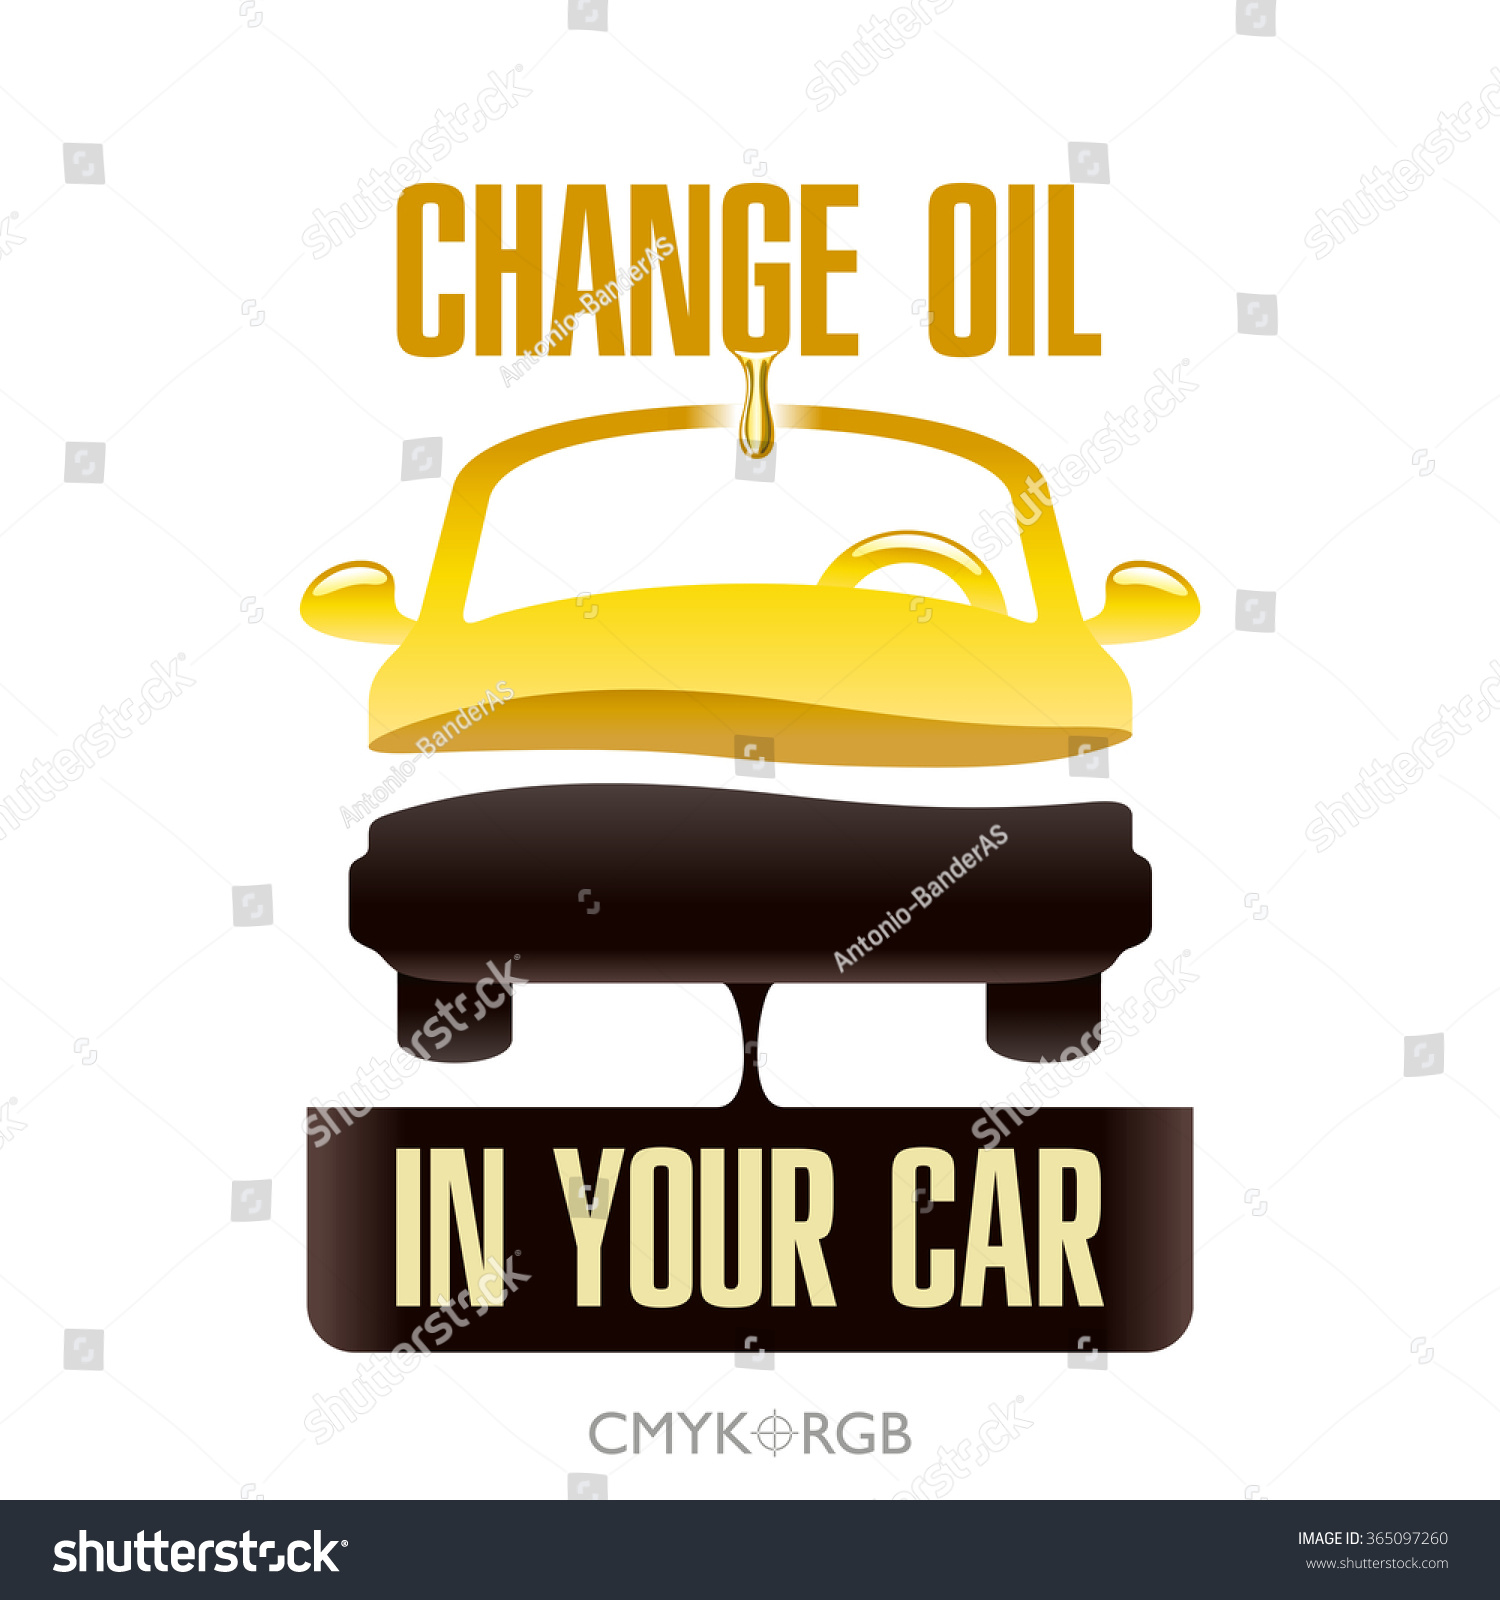 Graphic Illustration Of Engine Oil Change In Your Car